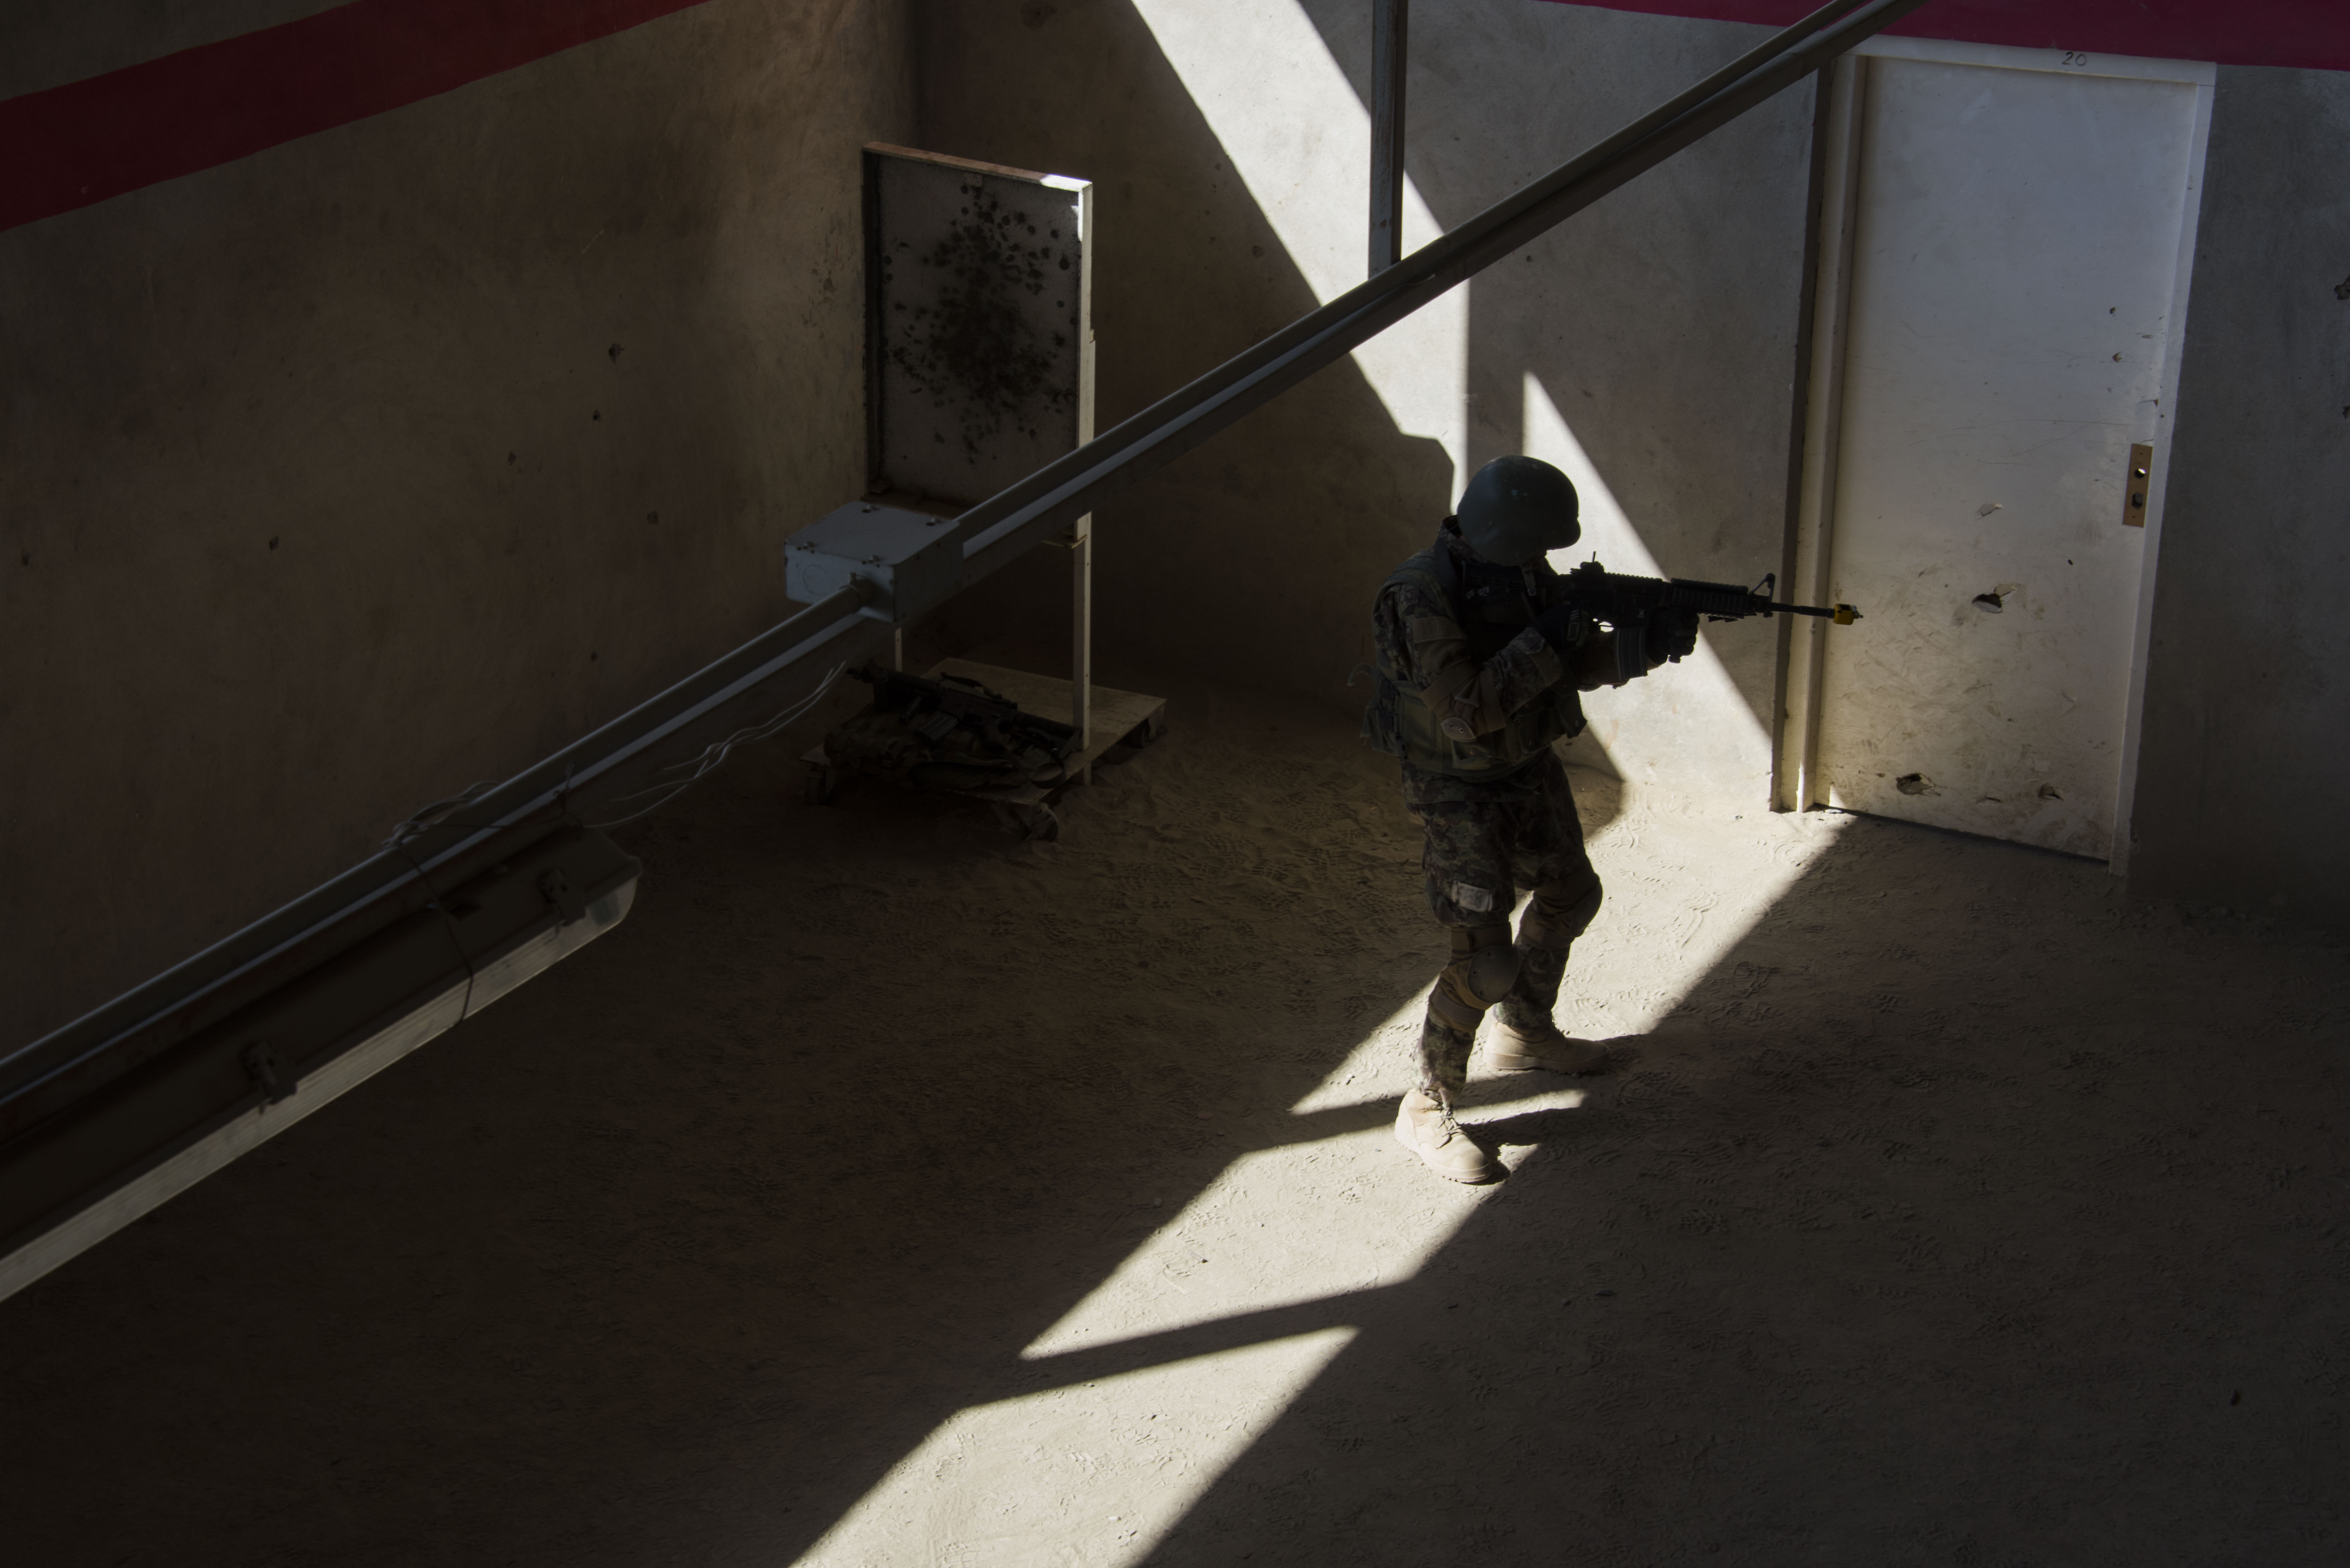 Portrait of a U.S. Marine at Camp Shorab in Helmand Province, Afghanistan by photojournalist and doc